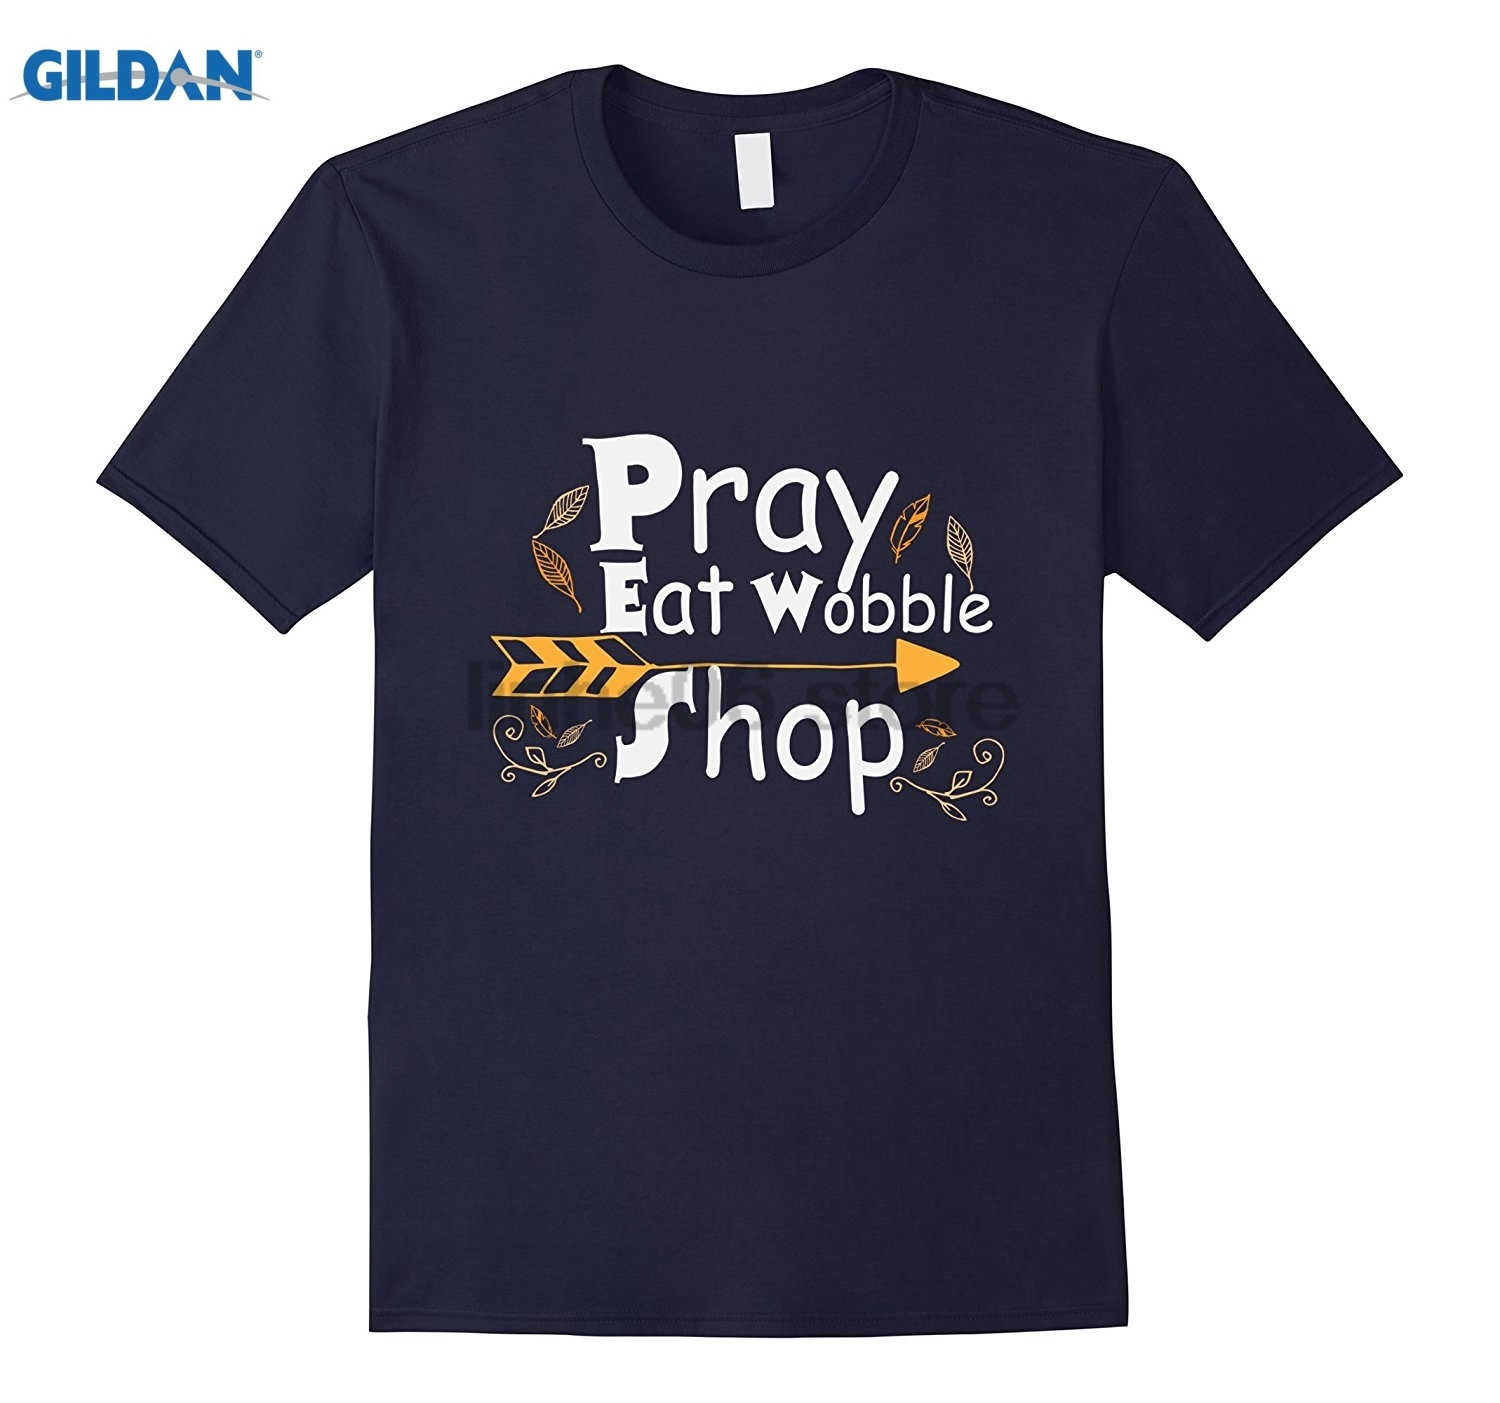 GILDAN Pray Eat Wobble Shop Funny Thanksgiving Fall Shirt Summer Mens T Shirt sunglasses women T-shirt